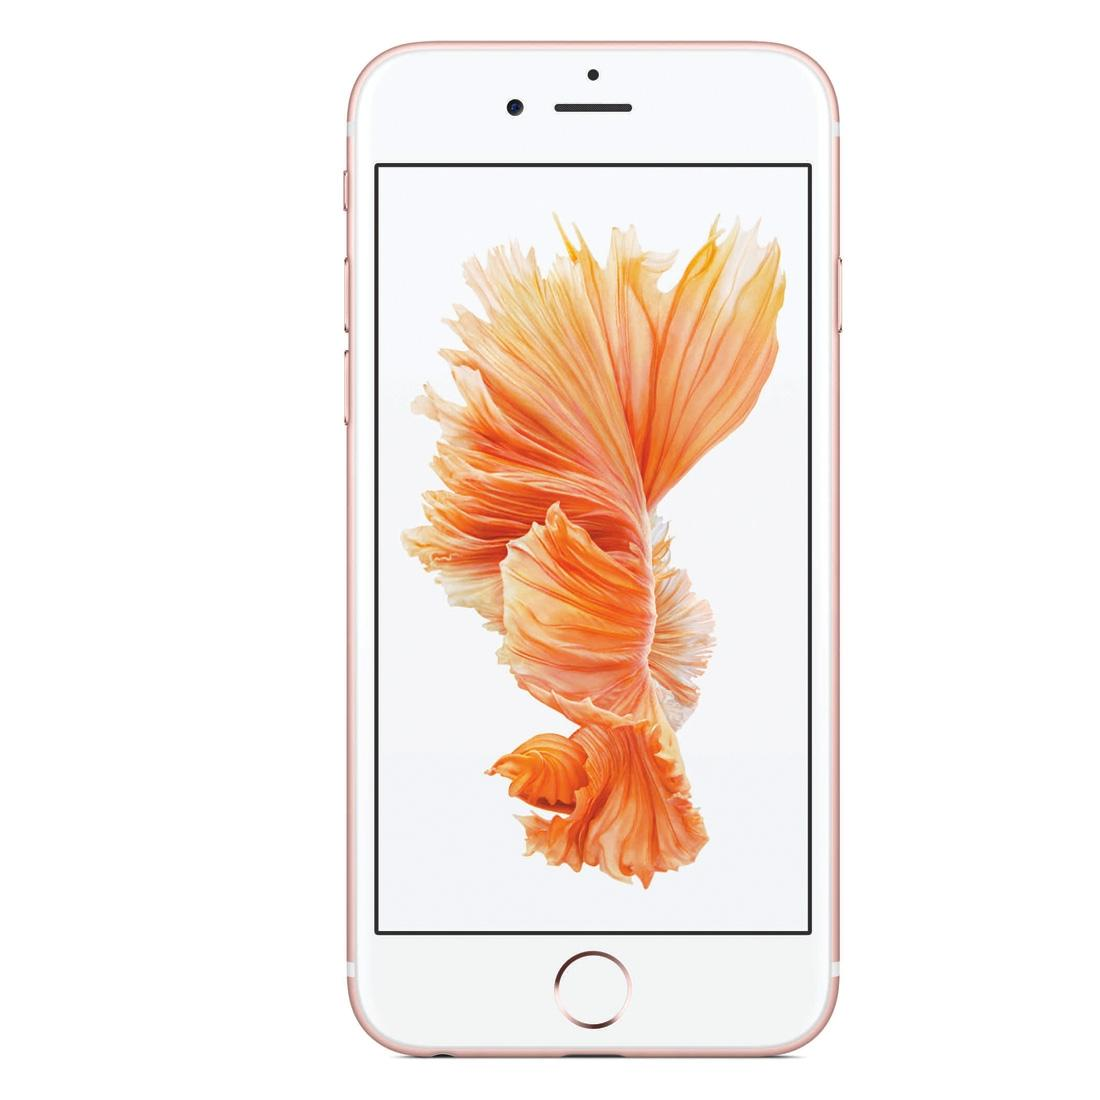 Iphone 6 Libre Precio Marca Original Iphone 6s Plus 2gb 64gb 2750mah 5 5 Pulgadas Ios 9 Huella Digital Montada En La Parte Frontal A9 M9 Nfc